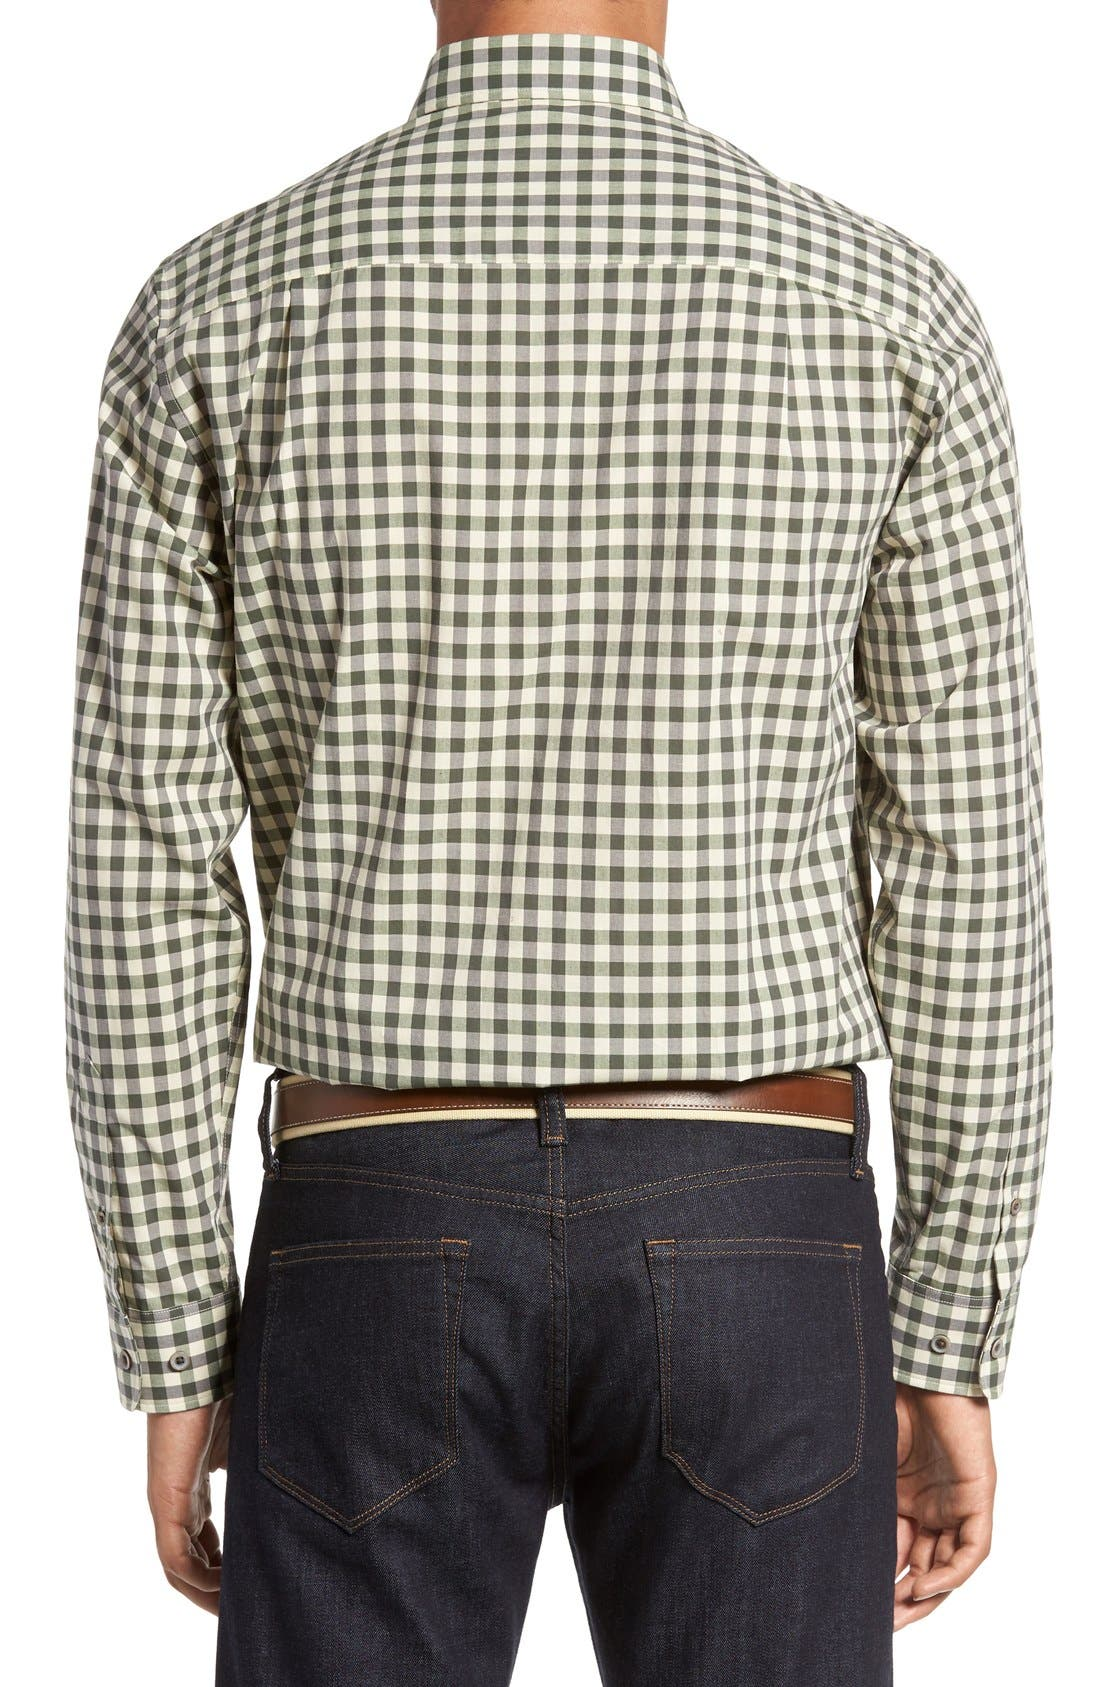 'Wildwood' Regular Fit Check Sport Shirt,                             Alternate thumbnail 3, color,                             Croquet